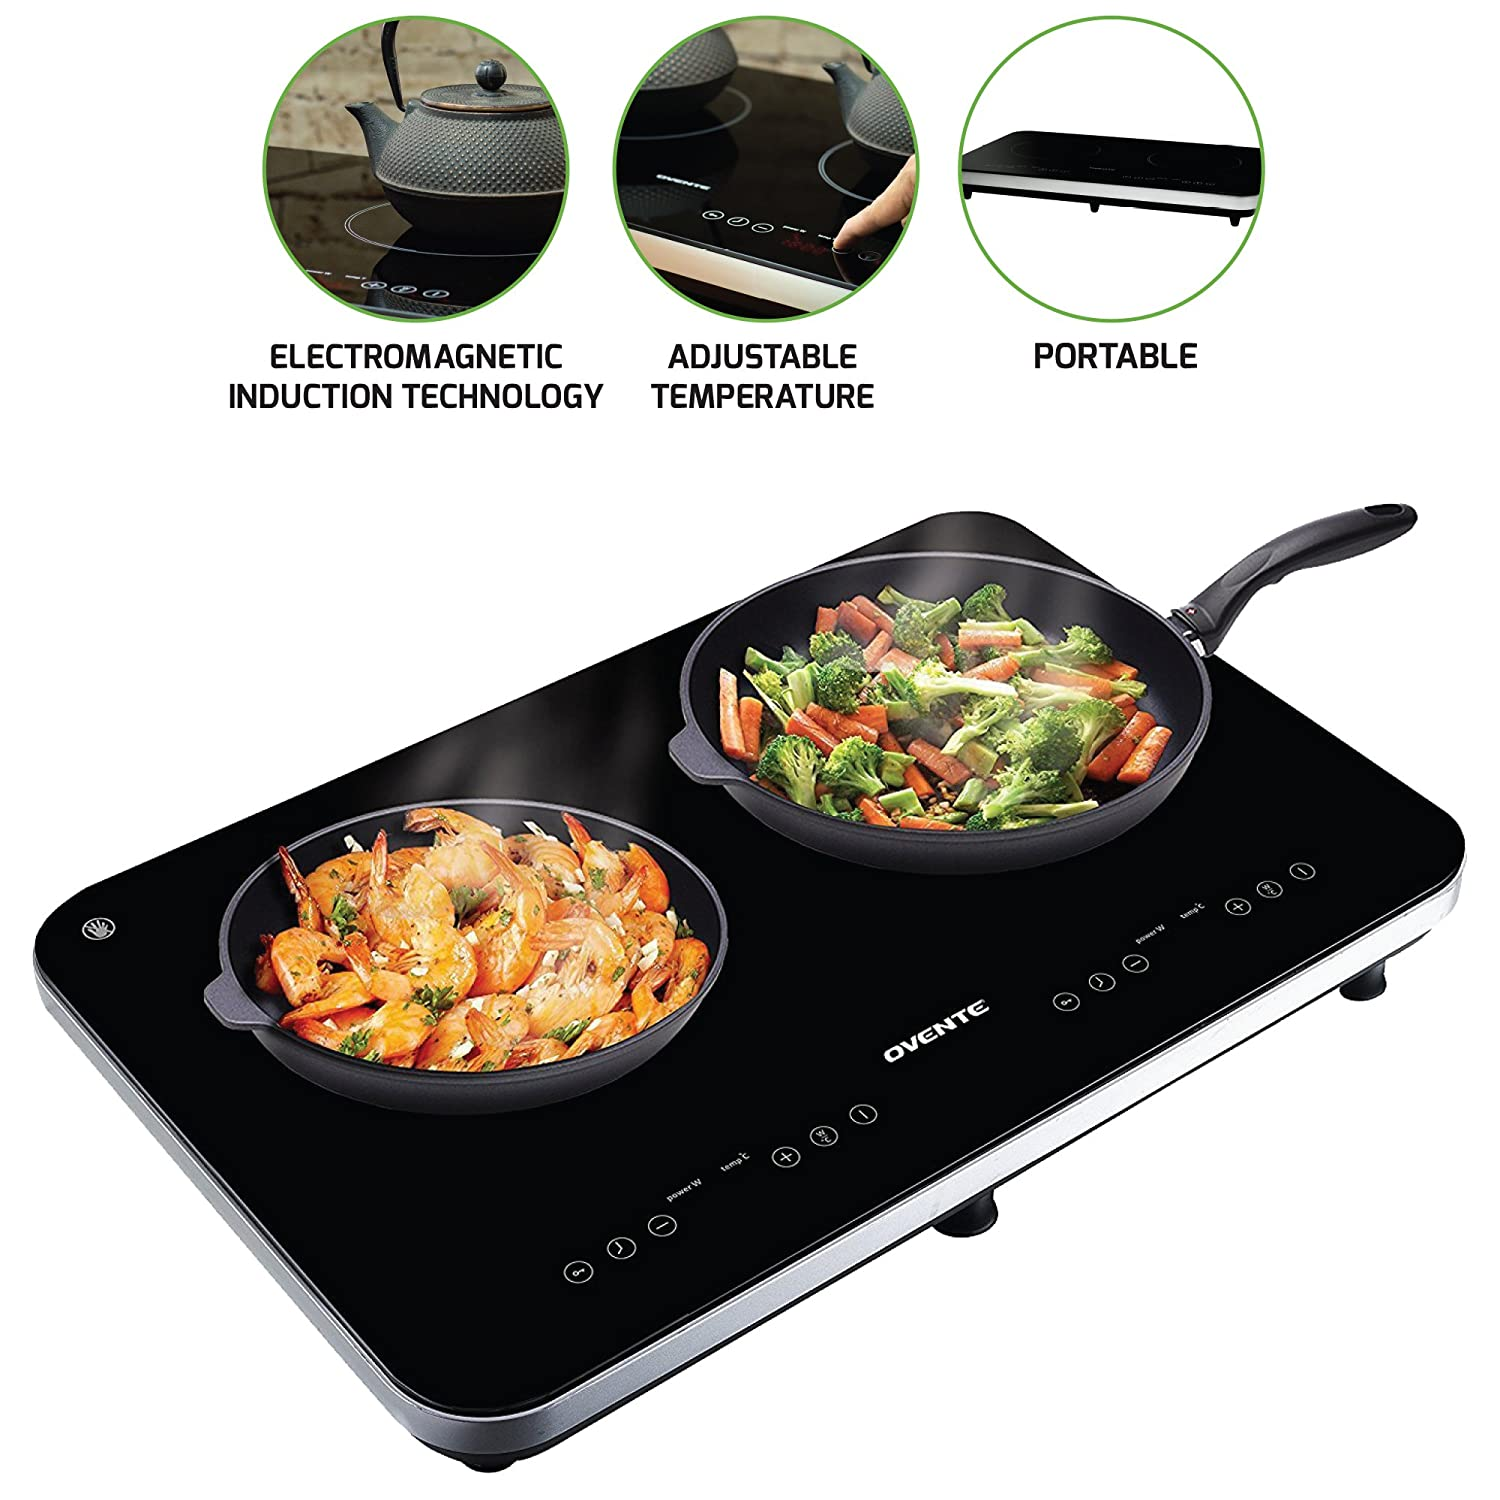 Ovente Ceramic Induction Cooktop Burner, 1800W, 8 Temperature Presets & 5 Timer Levels, Child Safety Lock, Stay-Cool Ceramic Glass Surface, LED Digital Display, Black (BG62B)